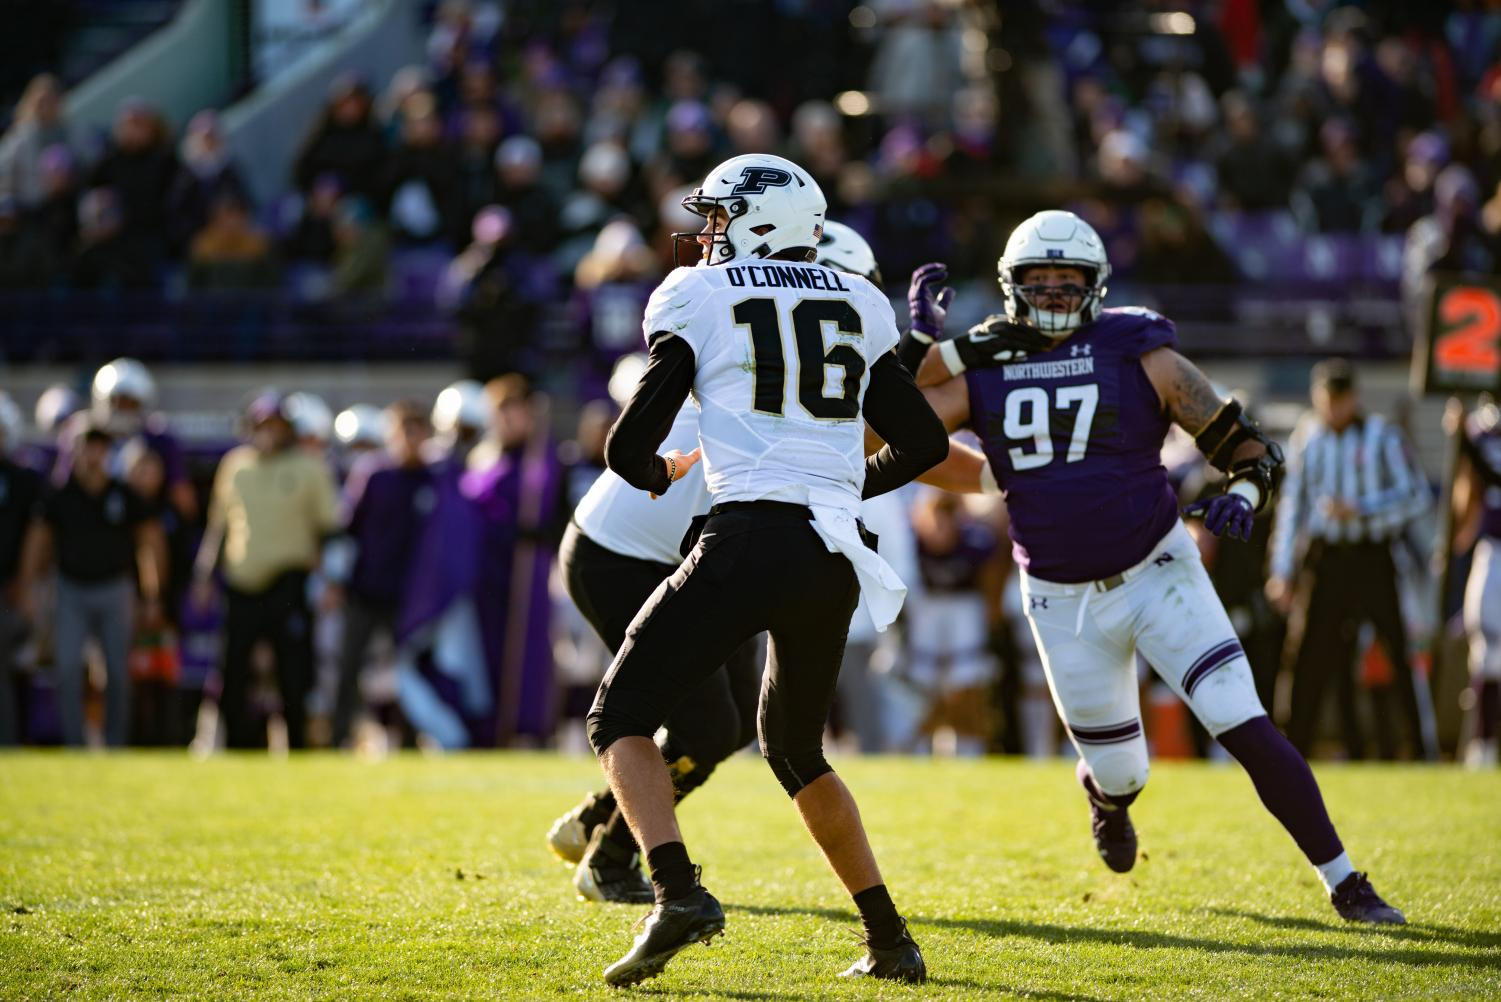 Aidan O'Connell drops back to pass. The sophomore led Purdue to a 24-22 win over Northwestern on Saturday at Ryan Field.